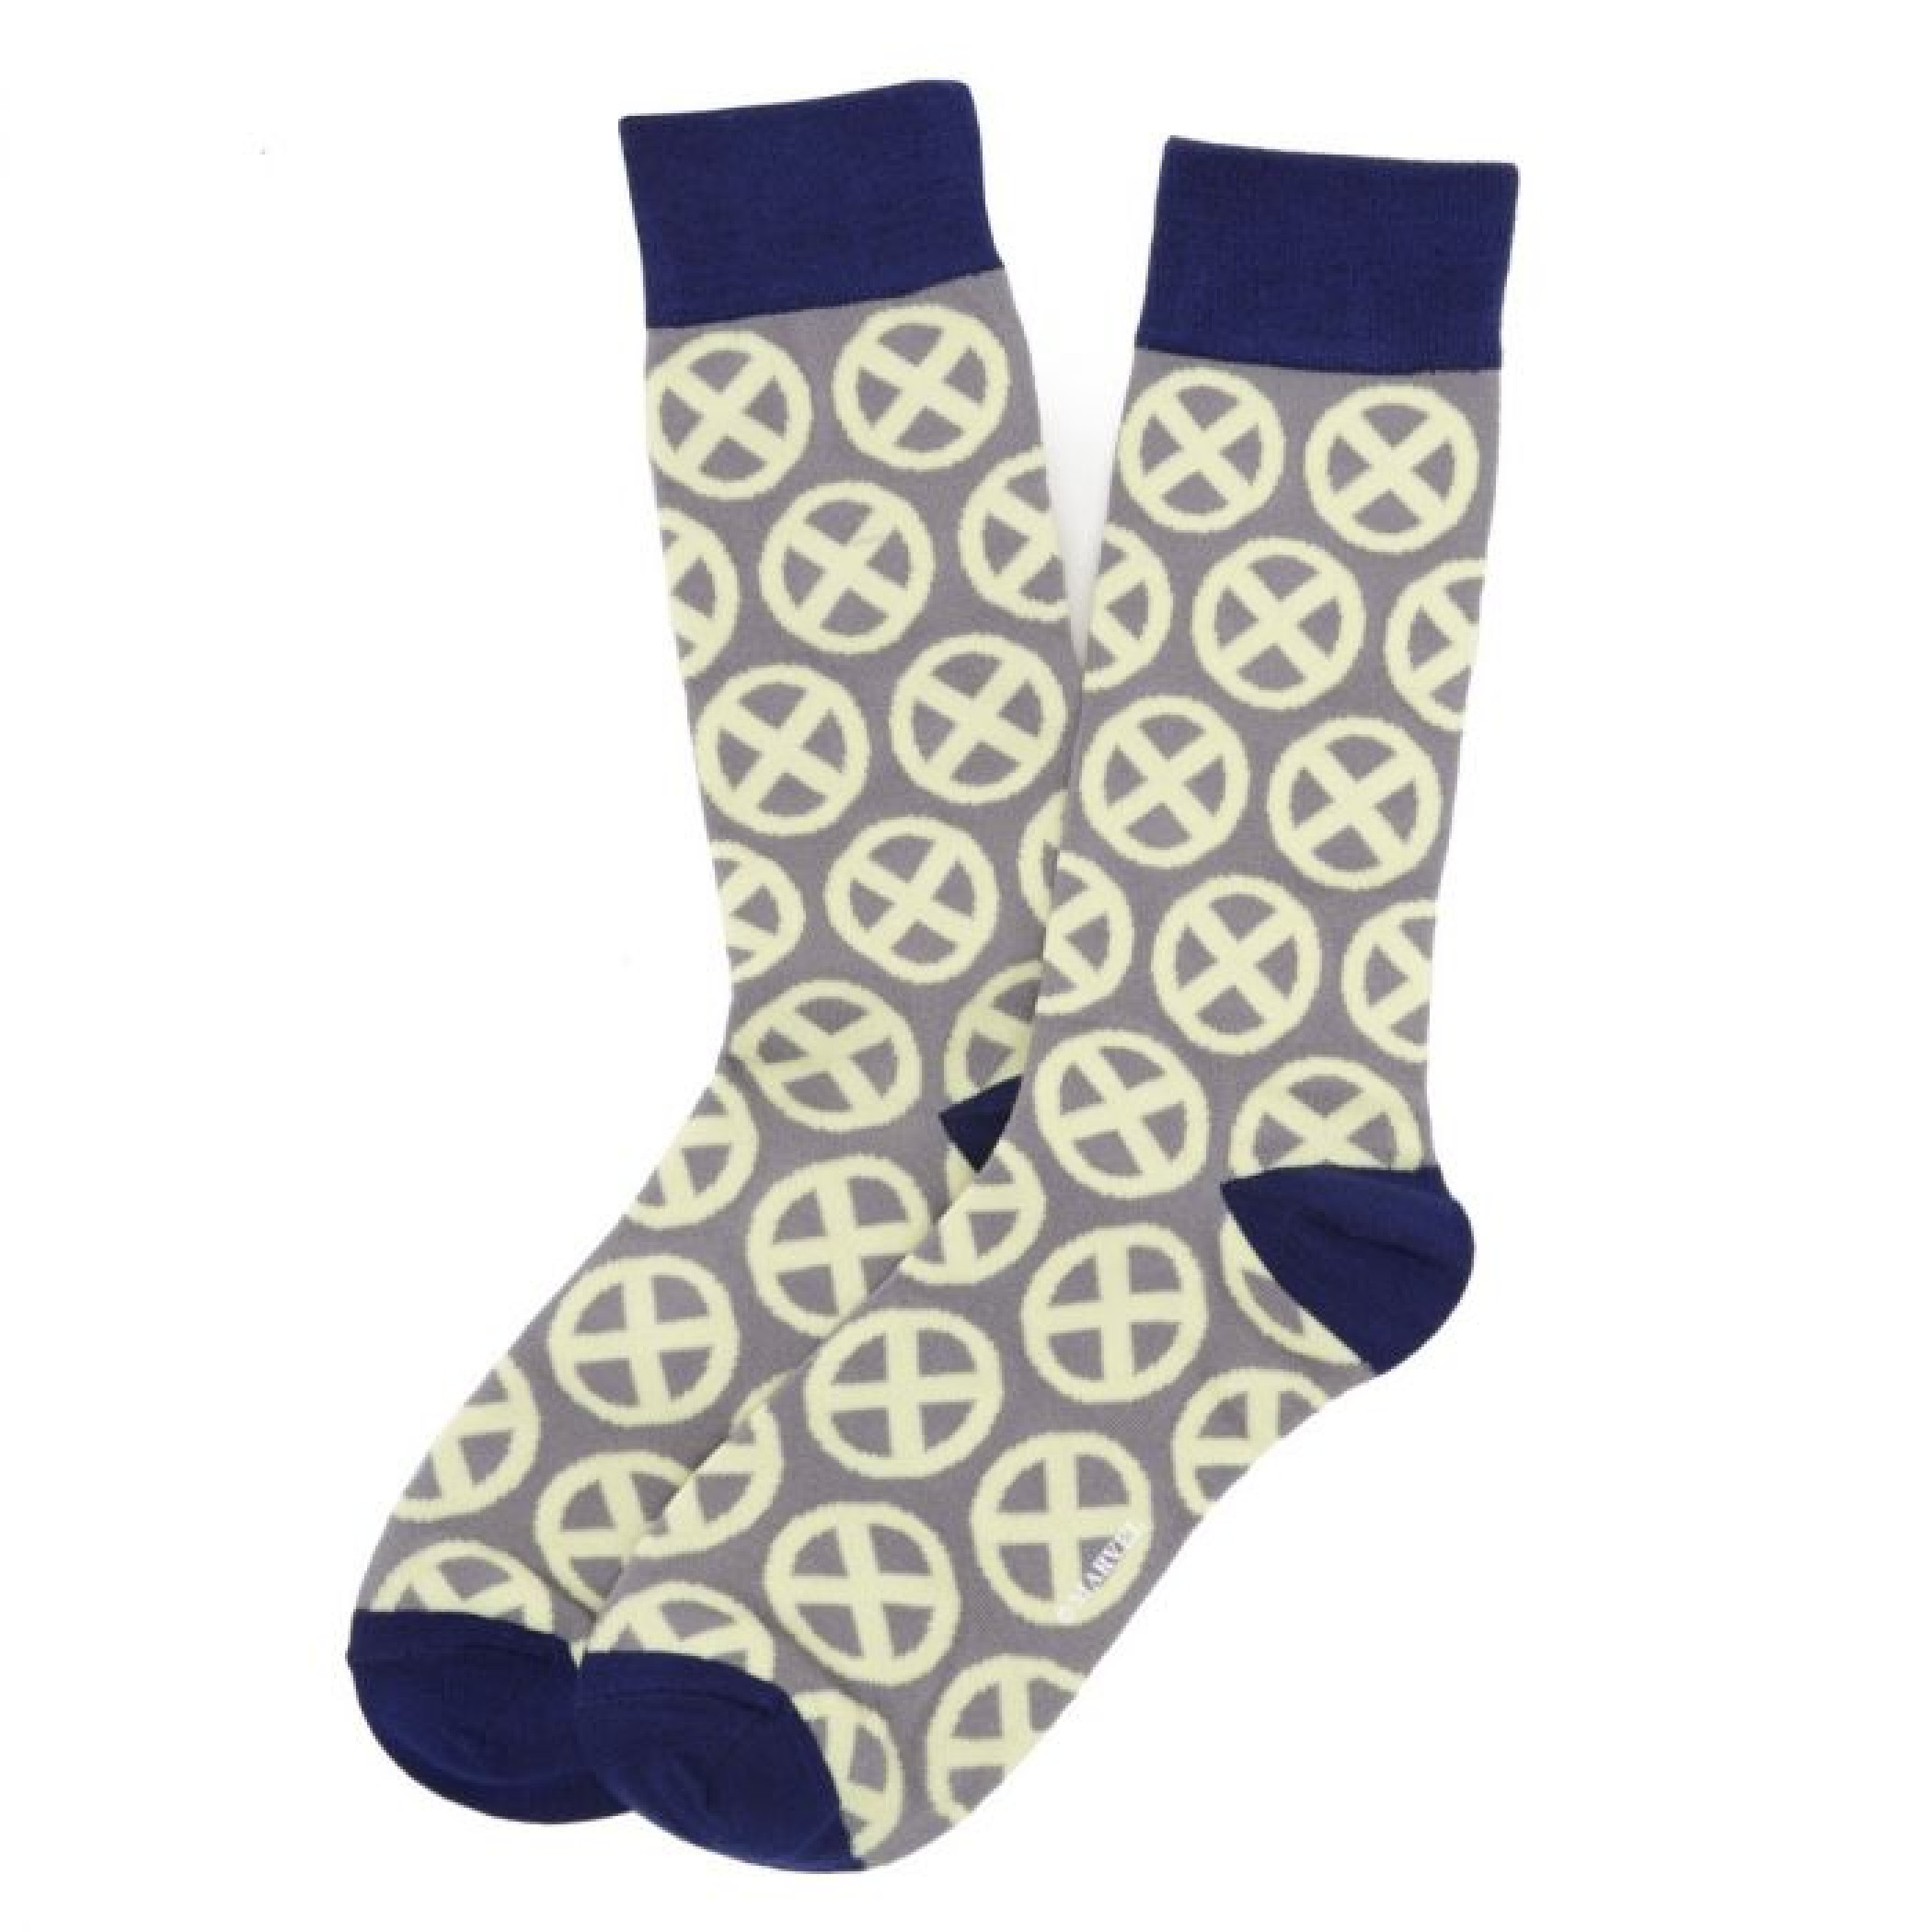 X-Men Socks 3 Pack Gift Set